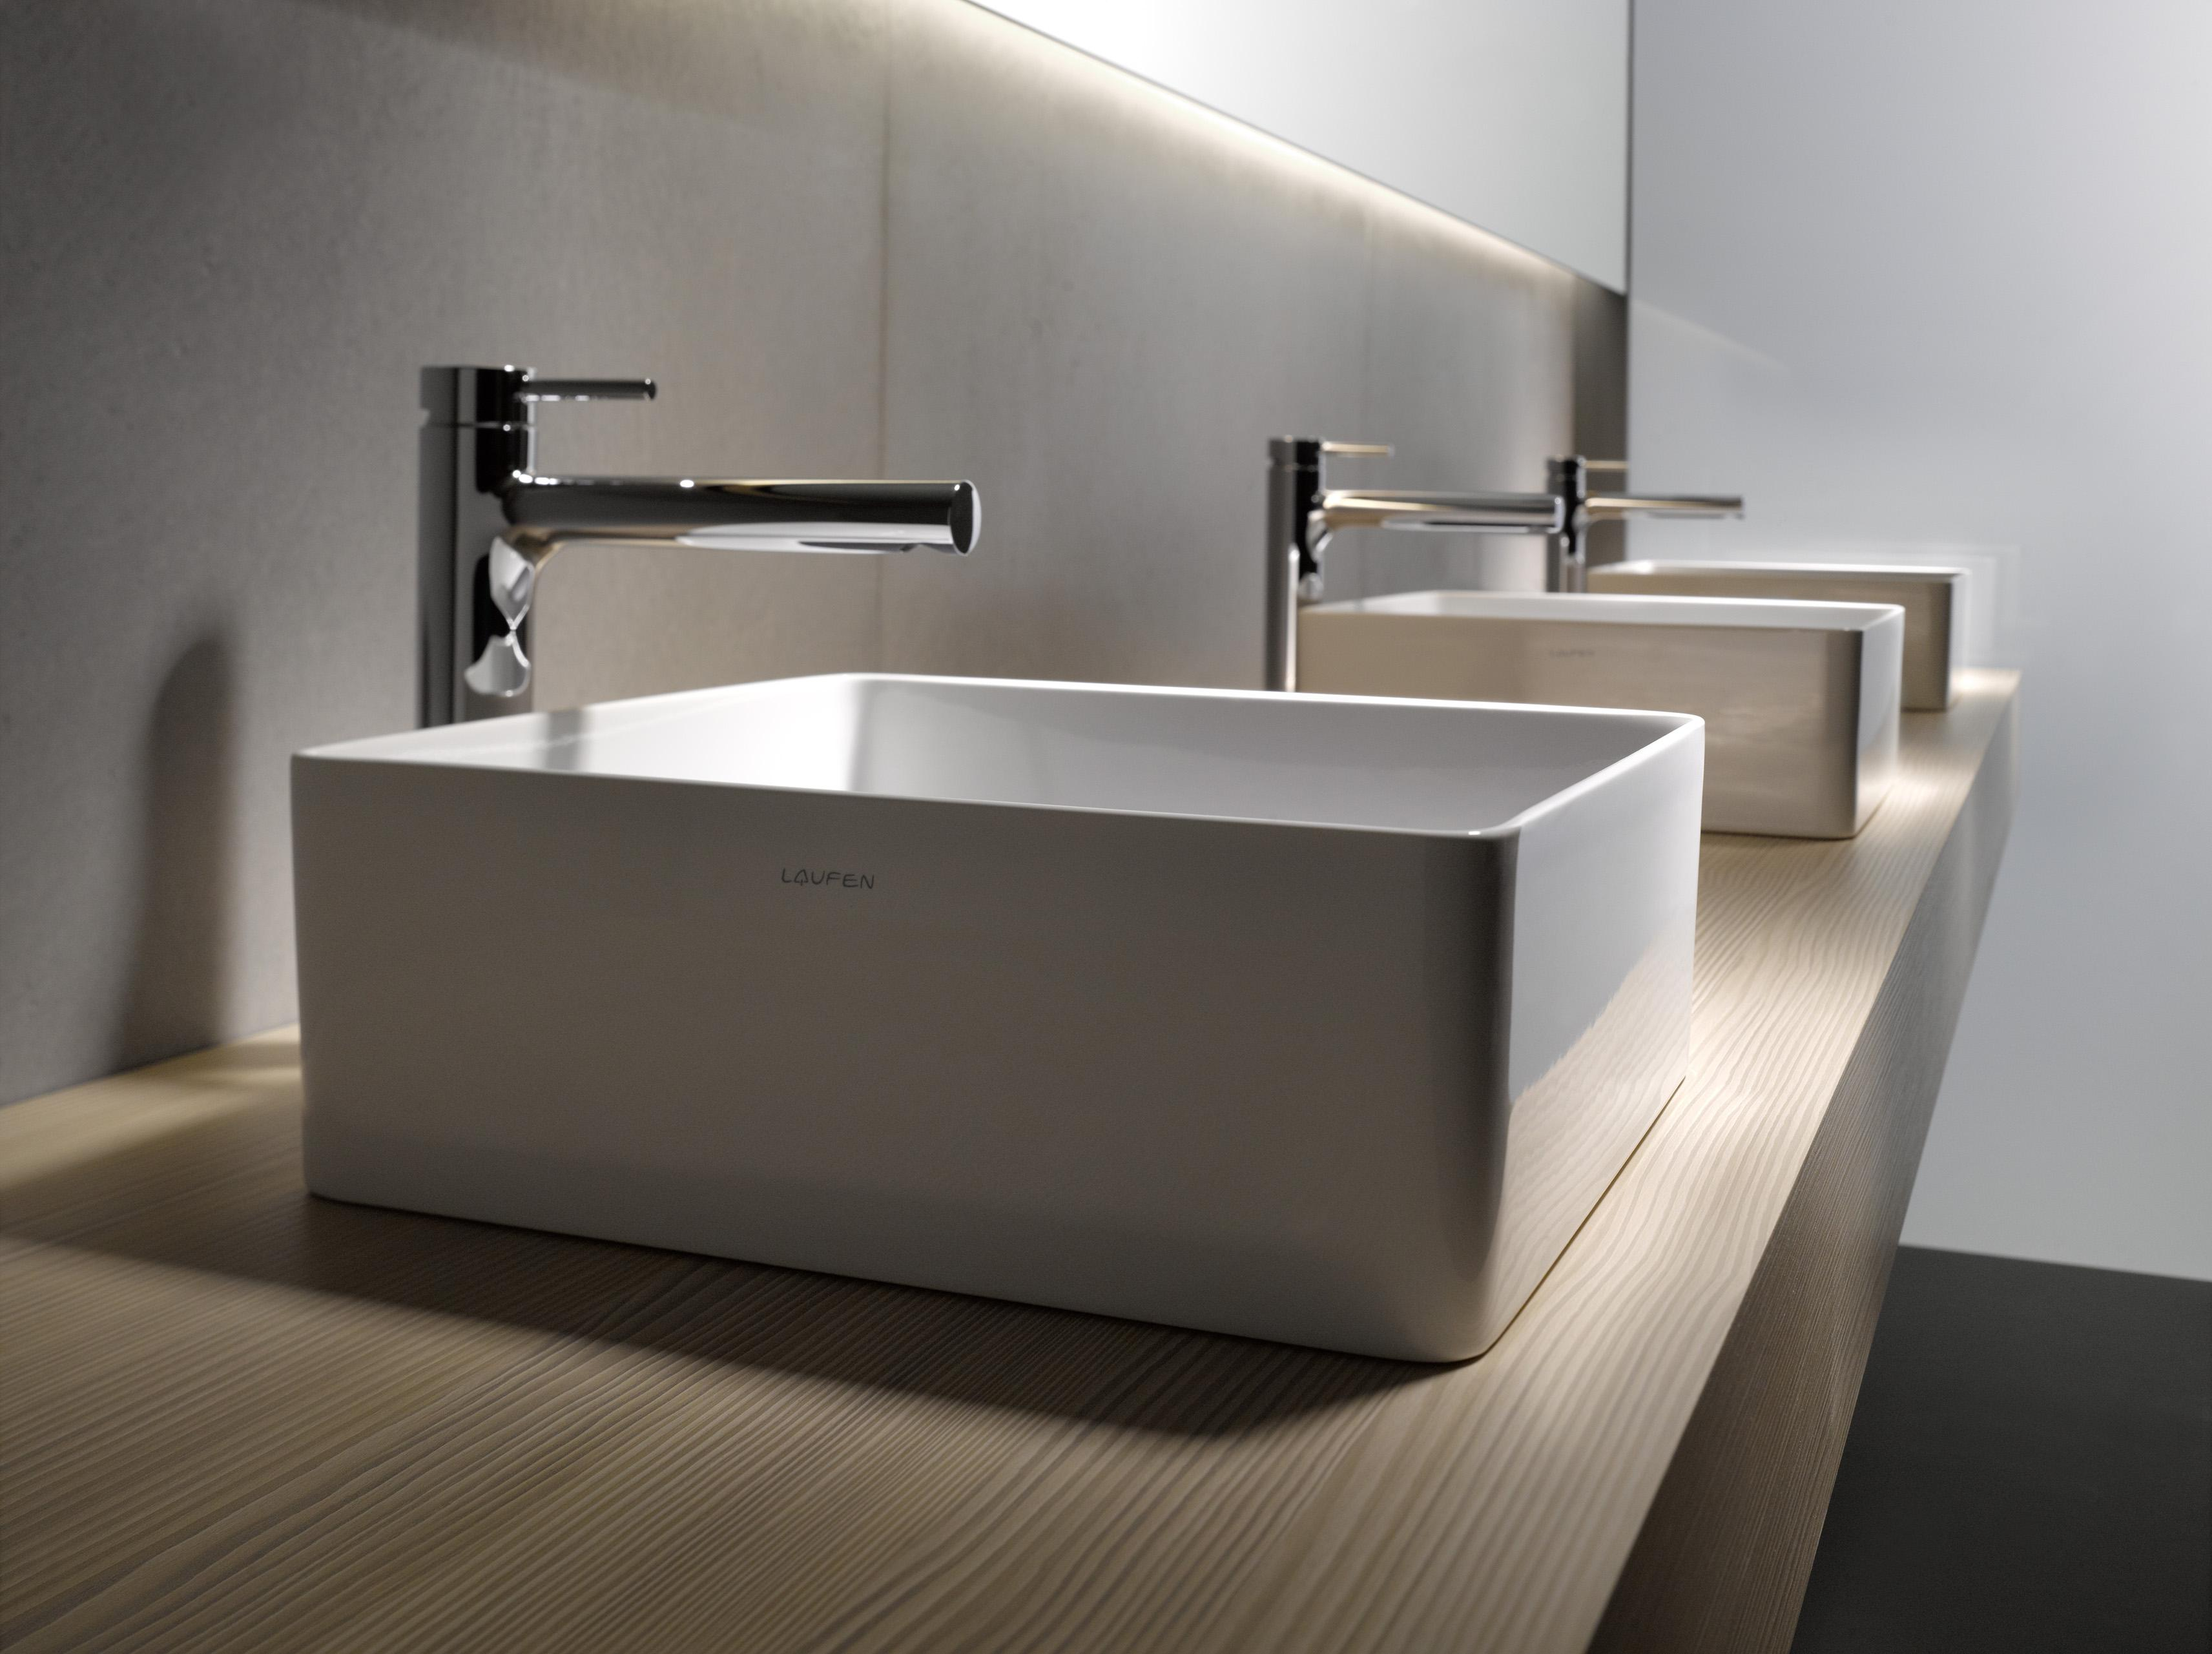 Jika laufen roca sanitary ceramics photos - Moderne toiletfotos ...